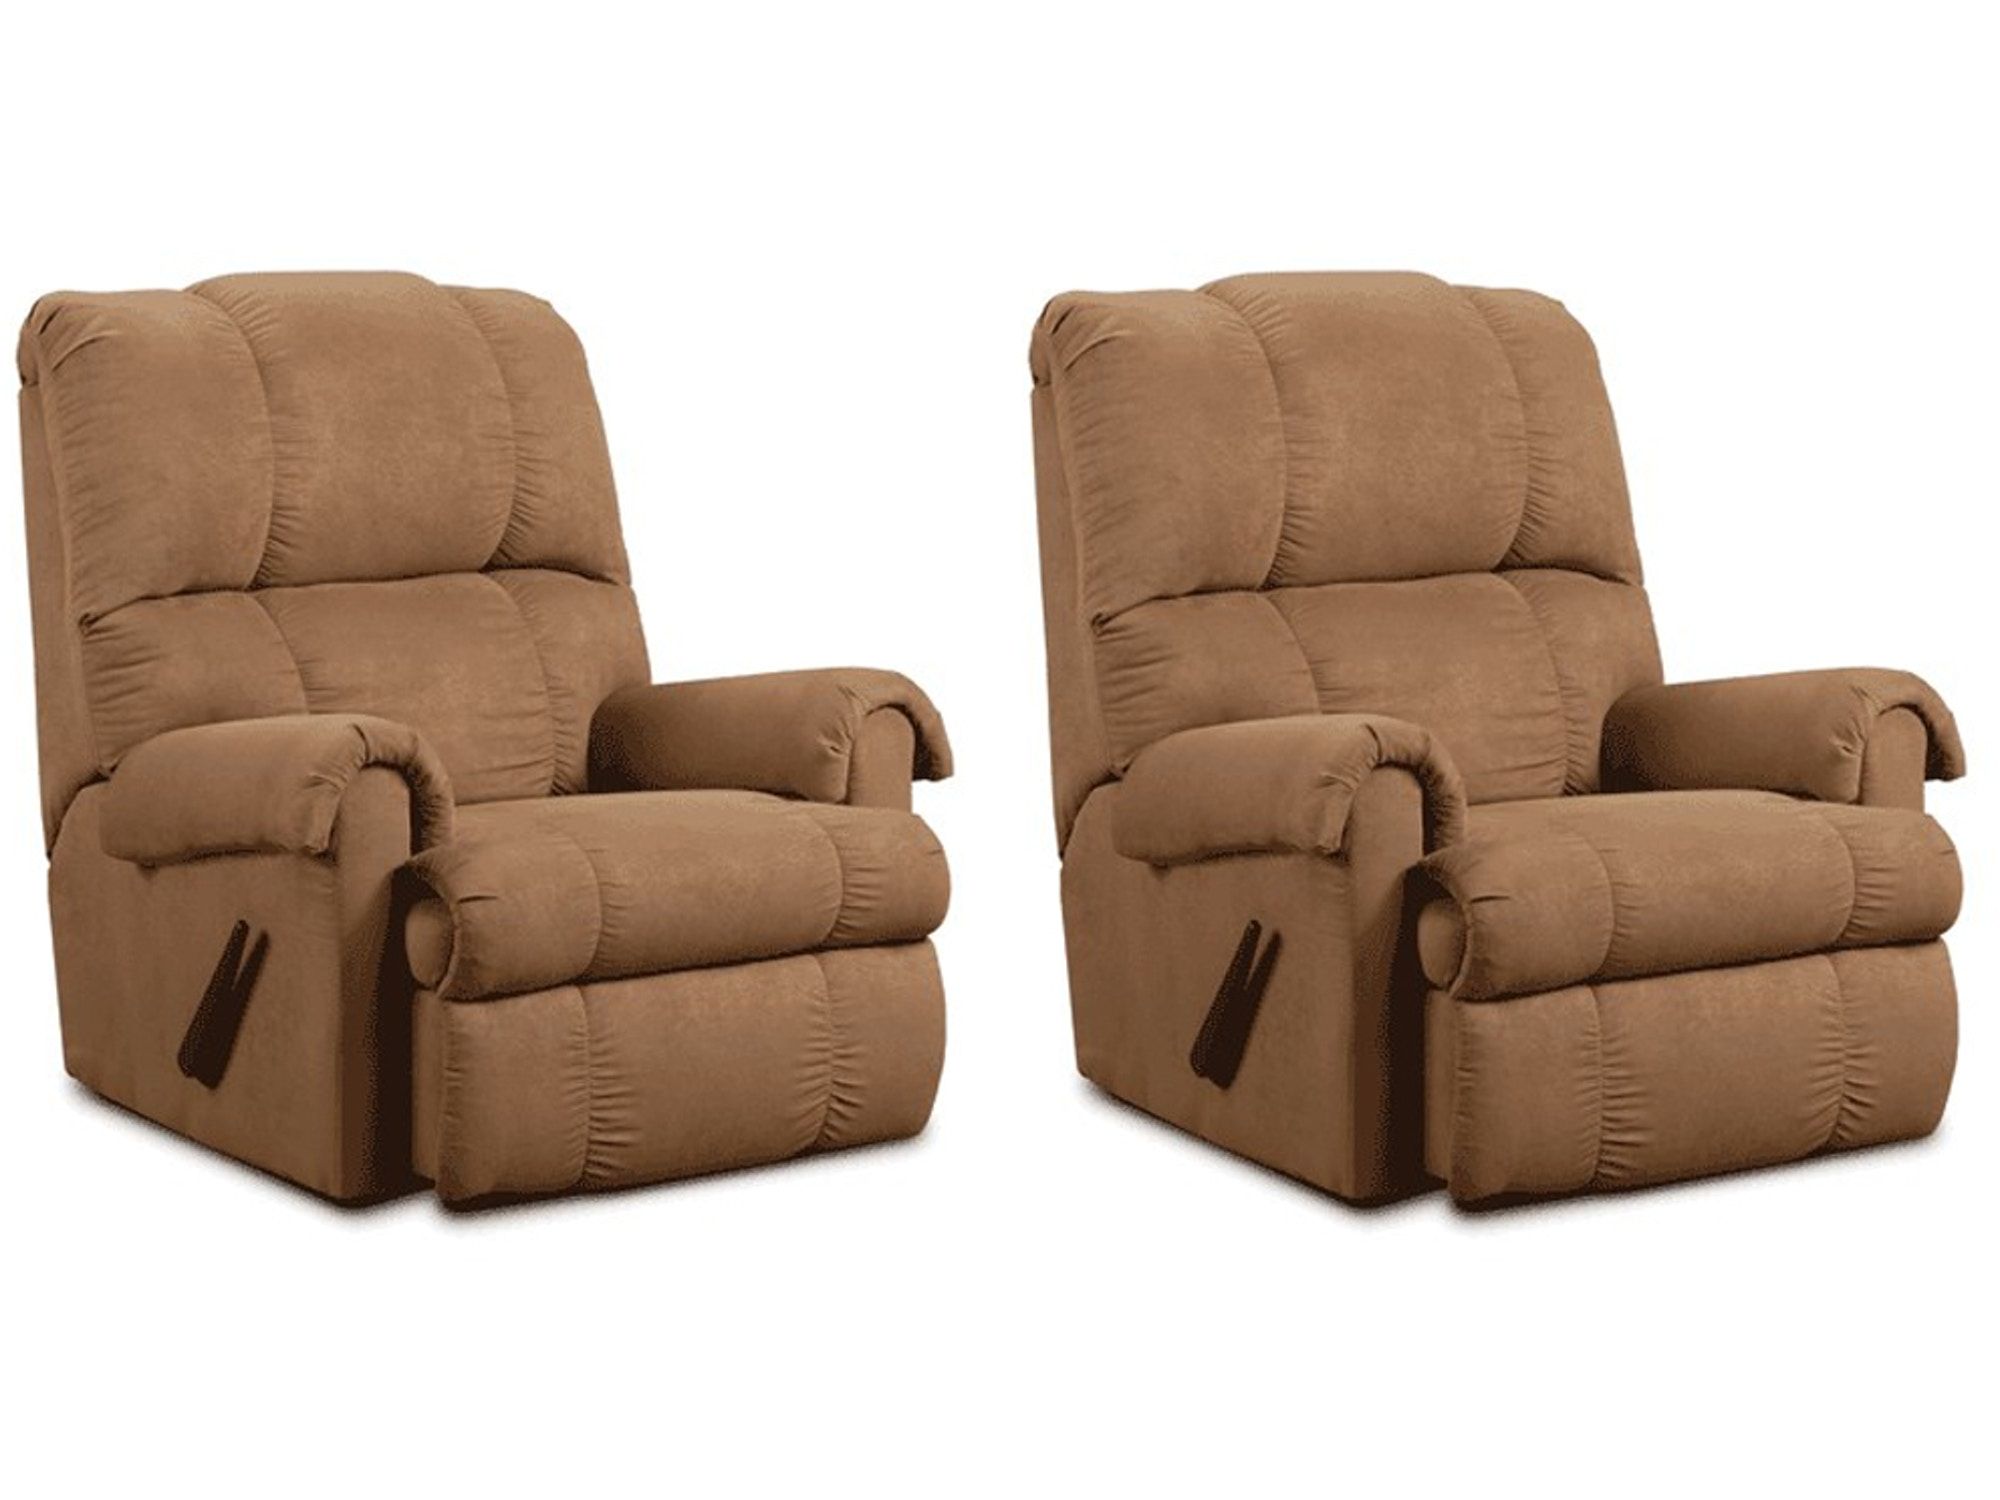 Taupe Rocker Recliner Pair 438364